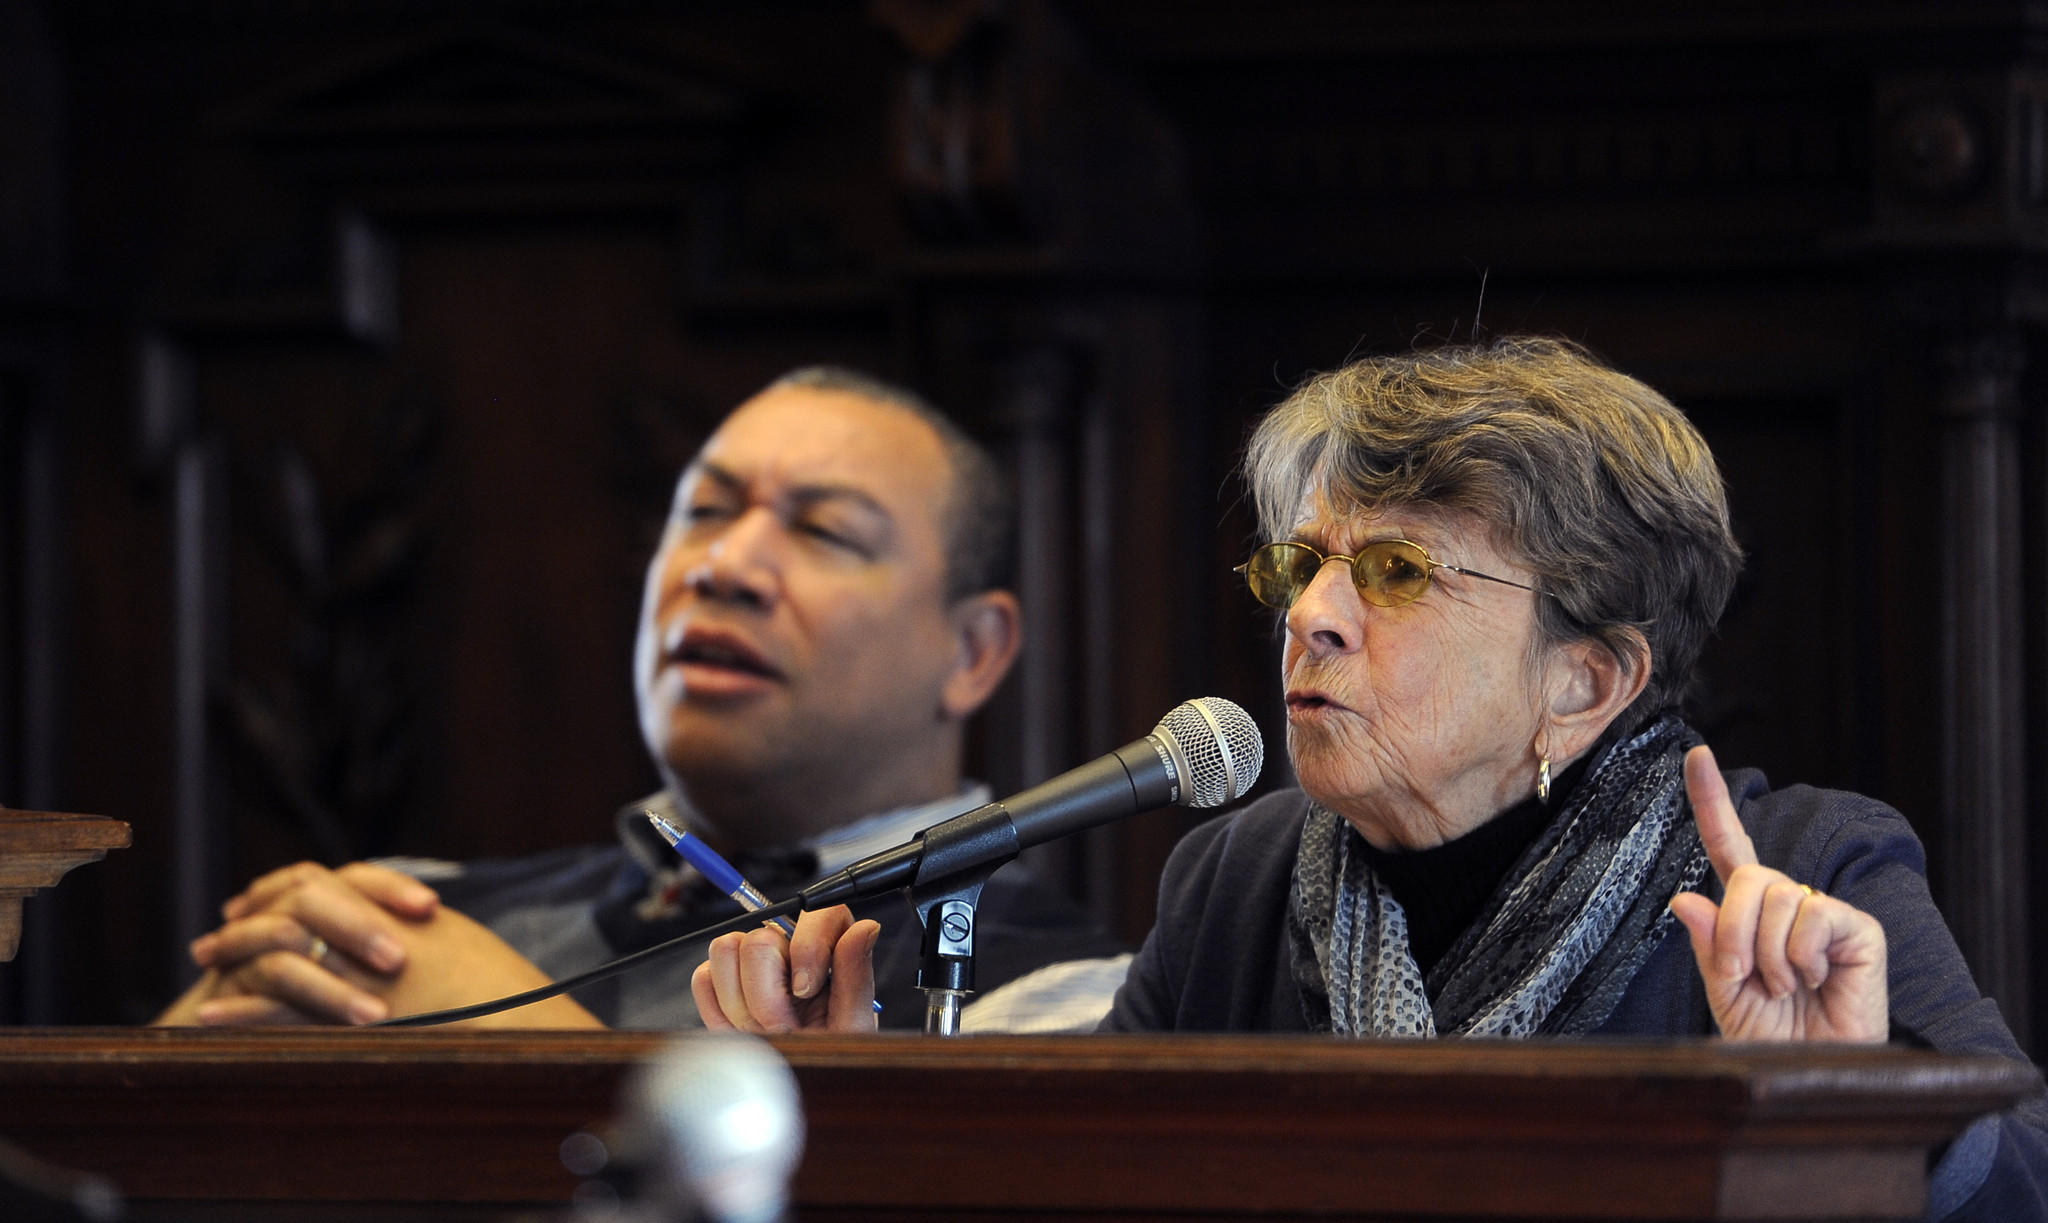 Council member Mary Pat Clarke, on right, asks a question at the Baltimore city council's taxation, finance and economic development committee hearing on Council Bill 13-0298, which concerns an excise tax on passenger-for-hire services, a temporary retroactive repeal of a law which taxes taxis. She is one of the bill's sponsors. Council member William Henry is on left.